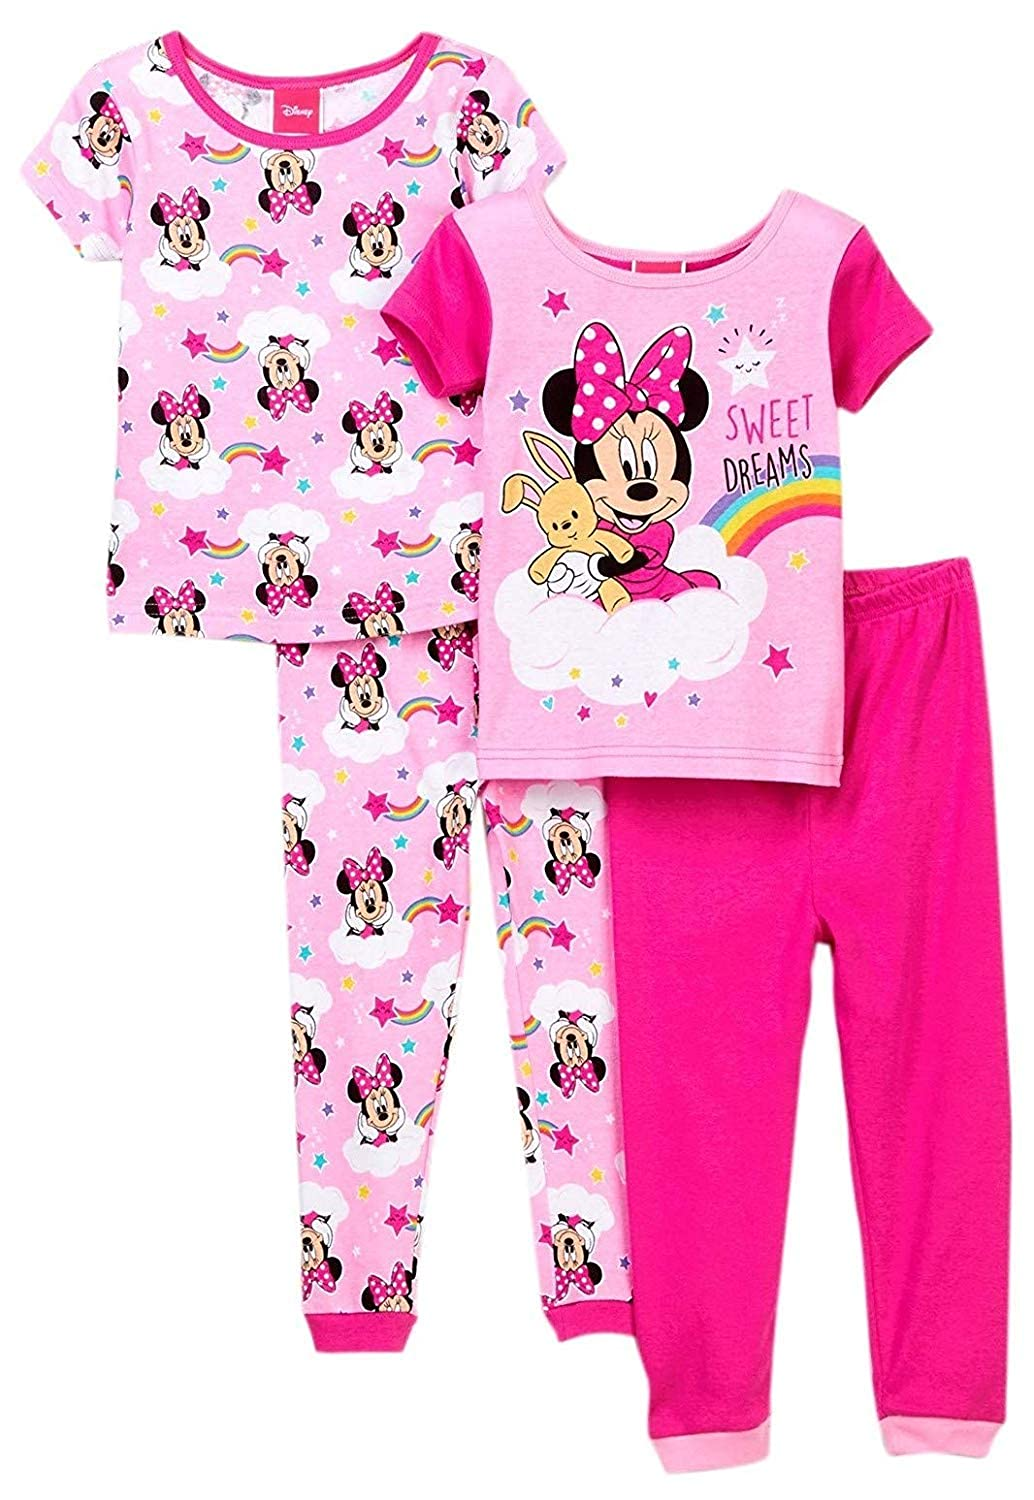 Toddler Sizes 2T-4T Disney Minnie Mouse Sweet Dreams Girls 4 Piece Pajama Set